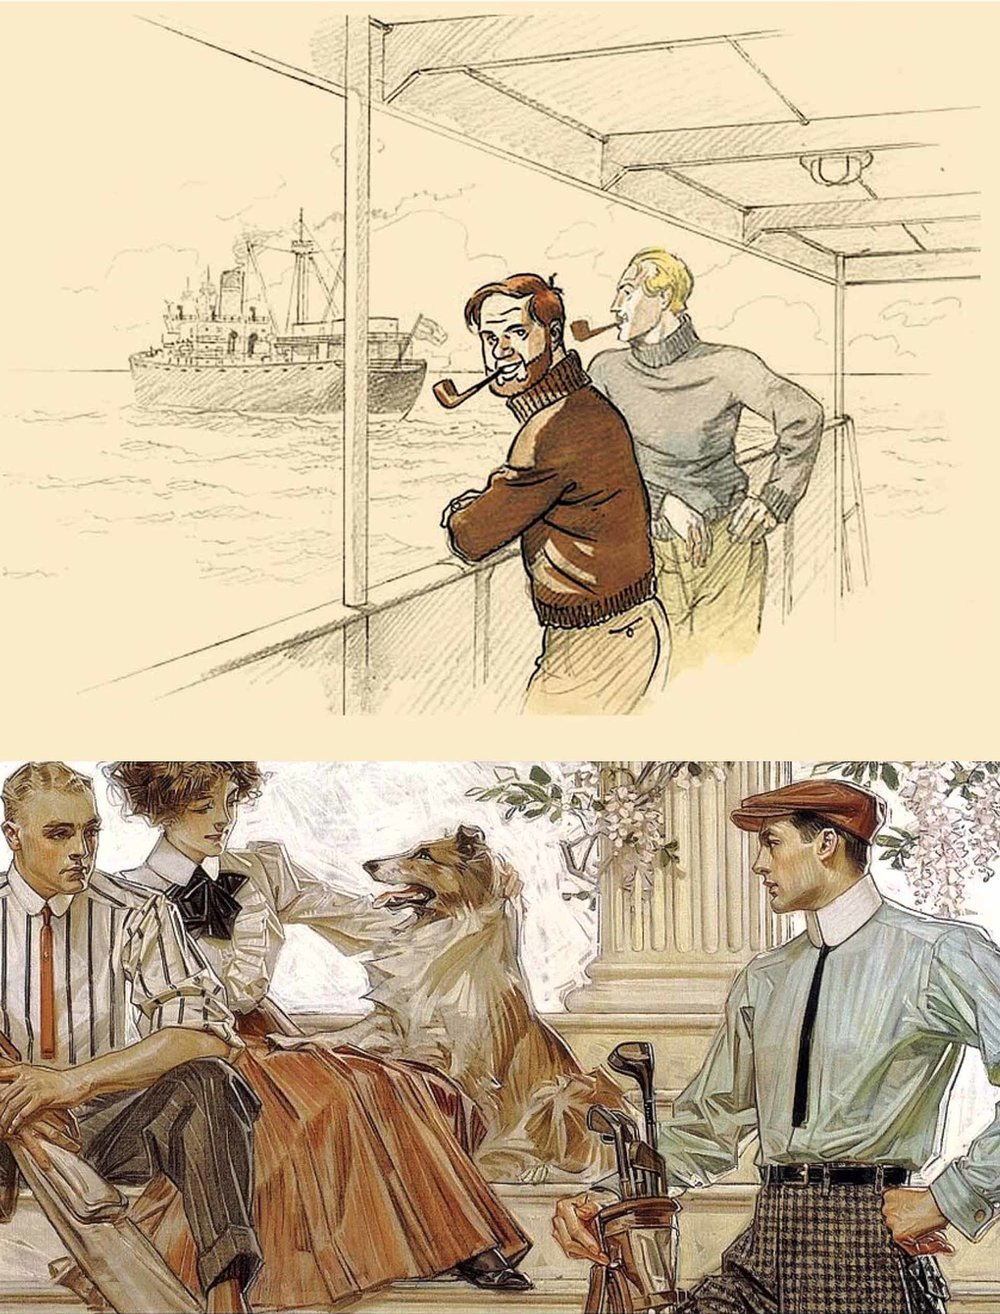 Influential illustrations from adventure comic series Blake et Mortimer (top) and US commercial artist JC Leyendecker.